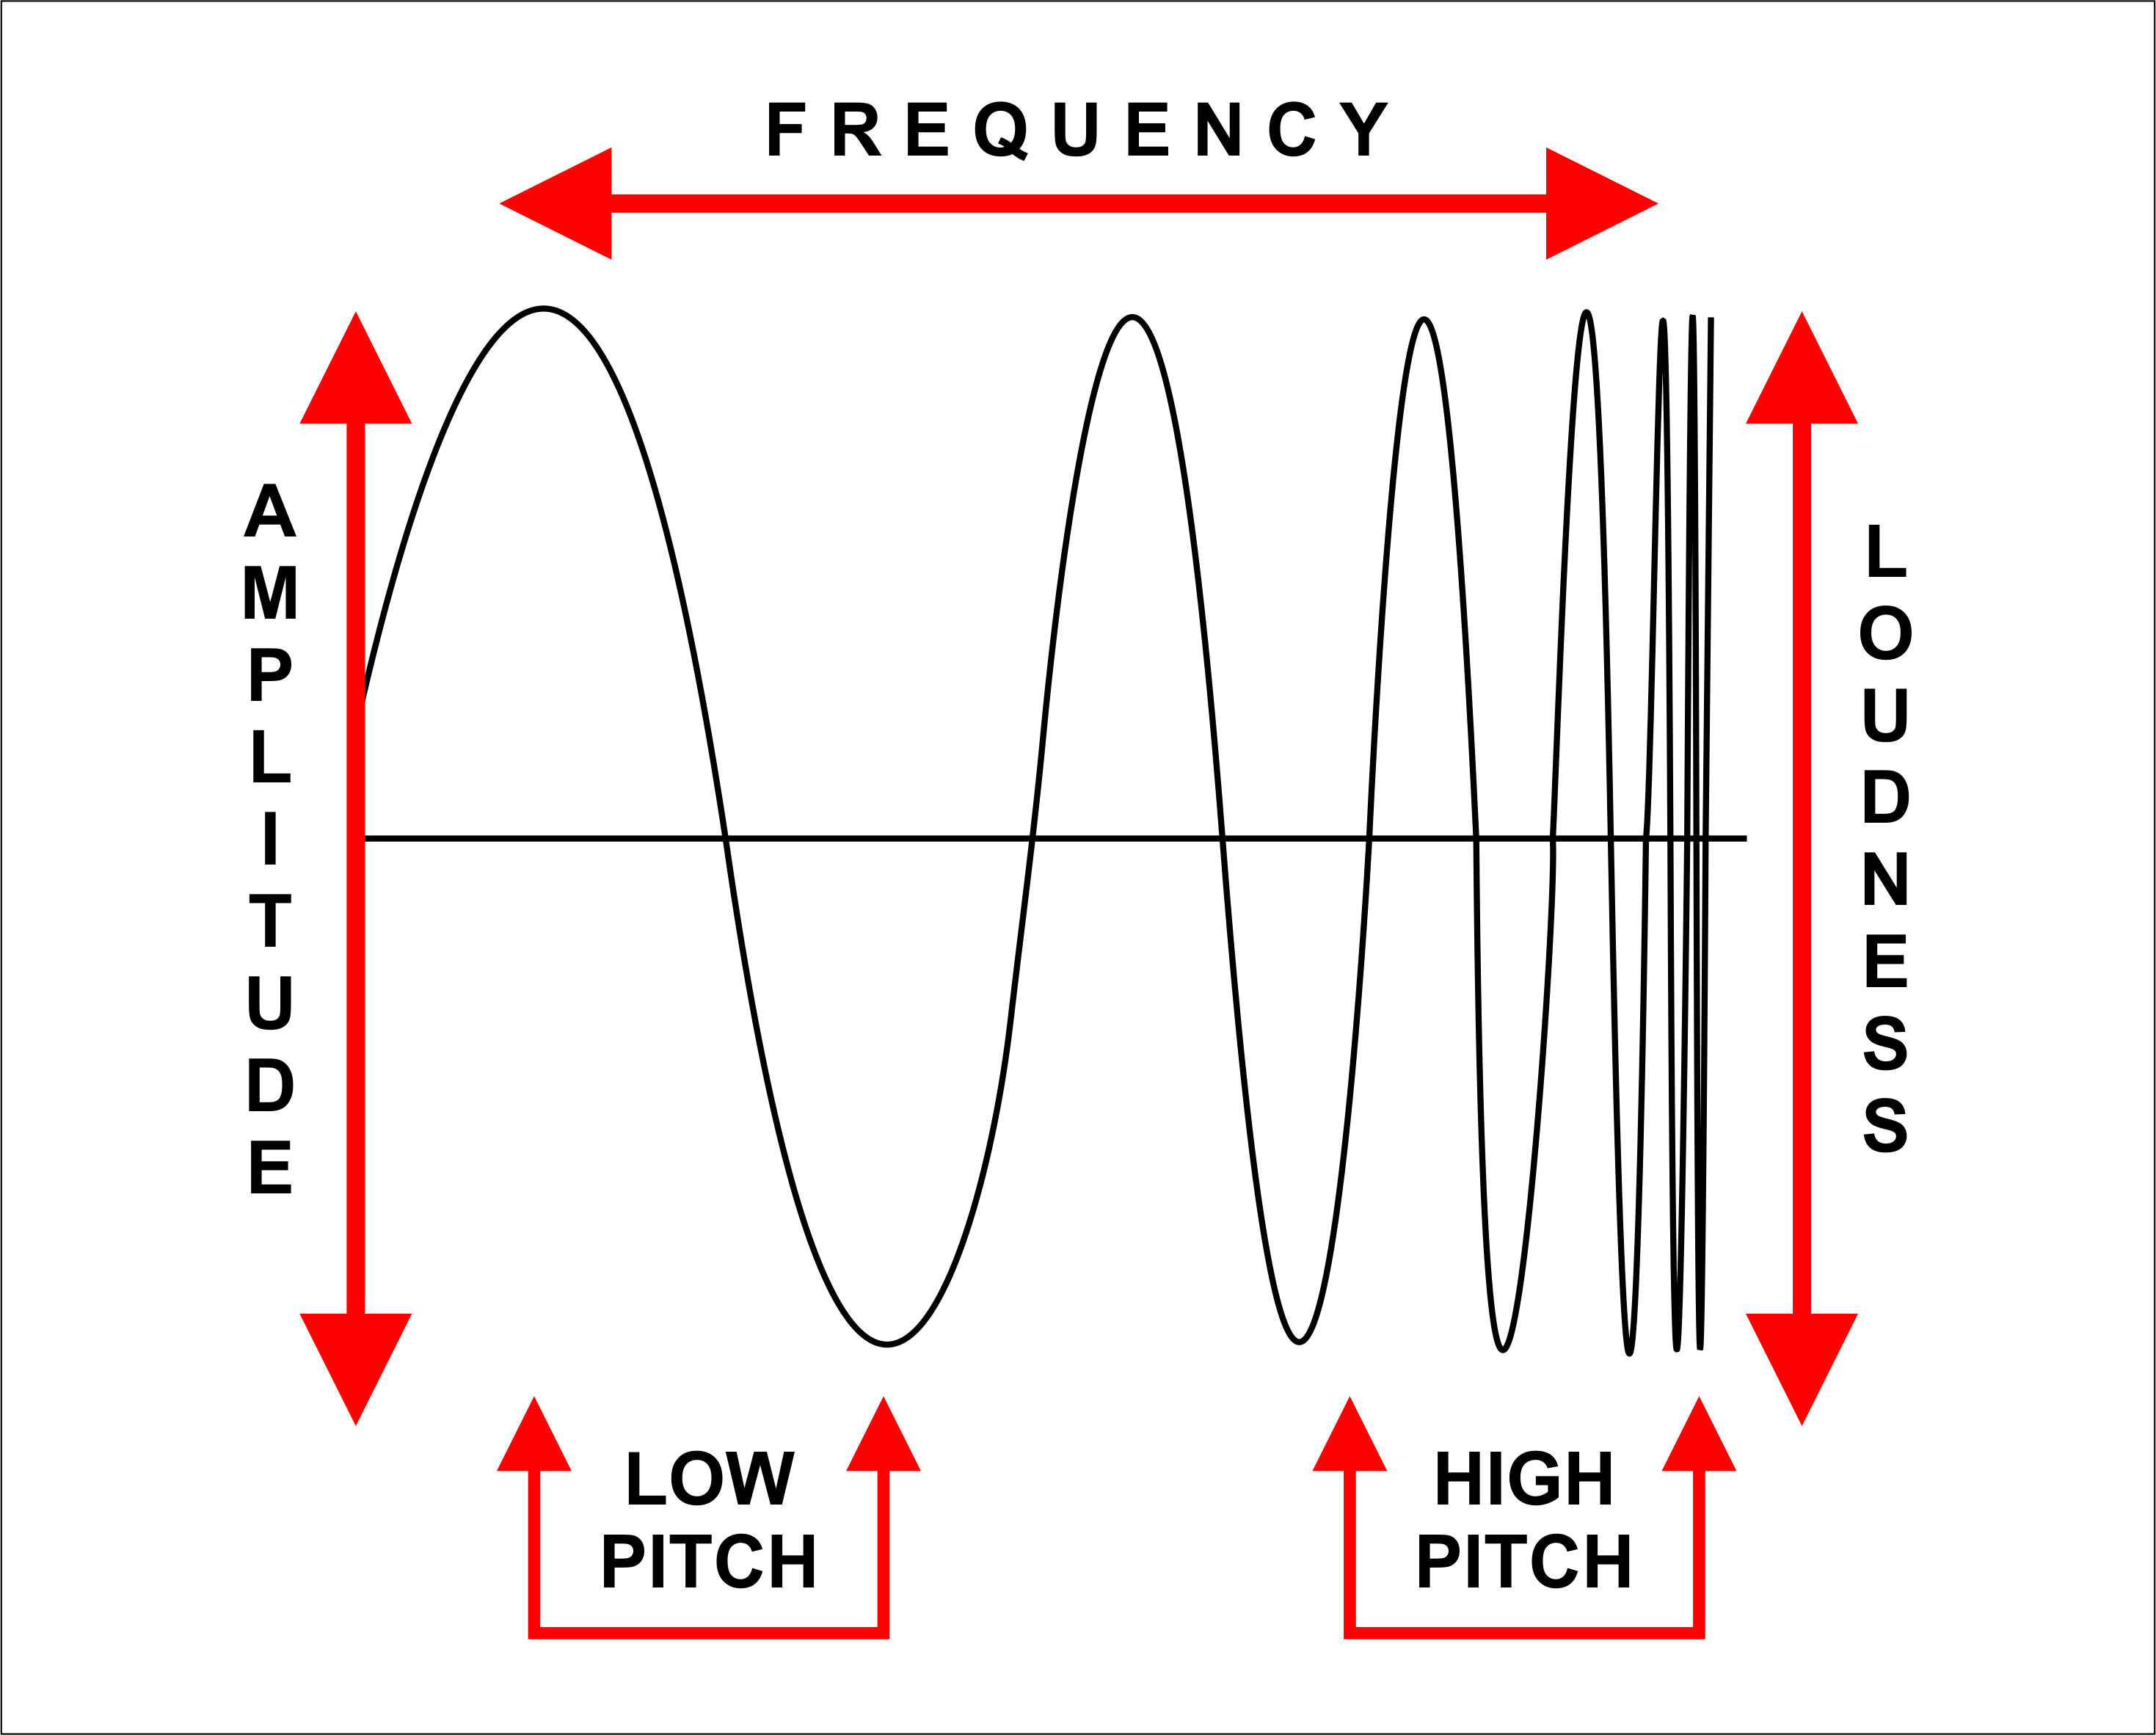 relationship between amplitude frequency pitch and volume of sound waves